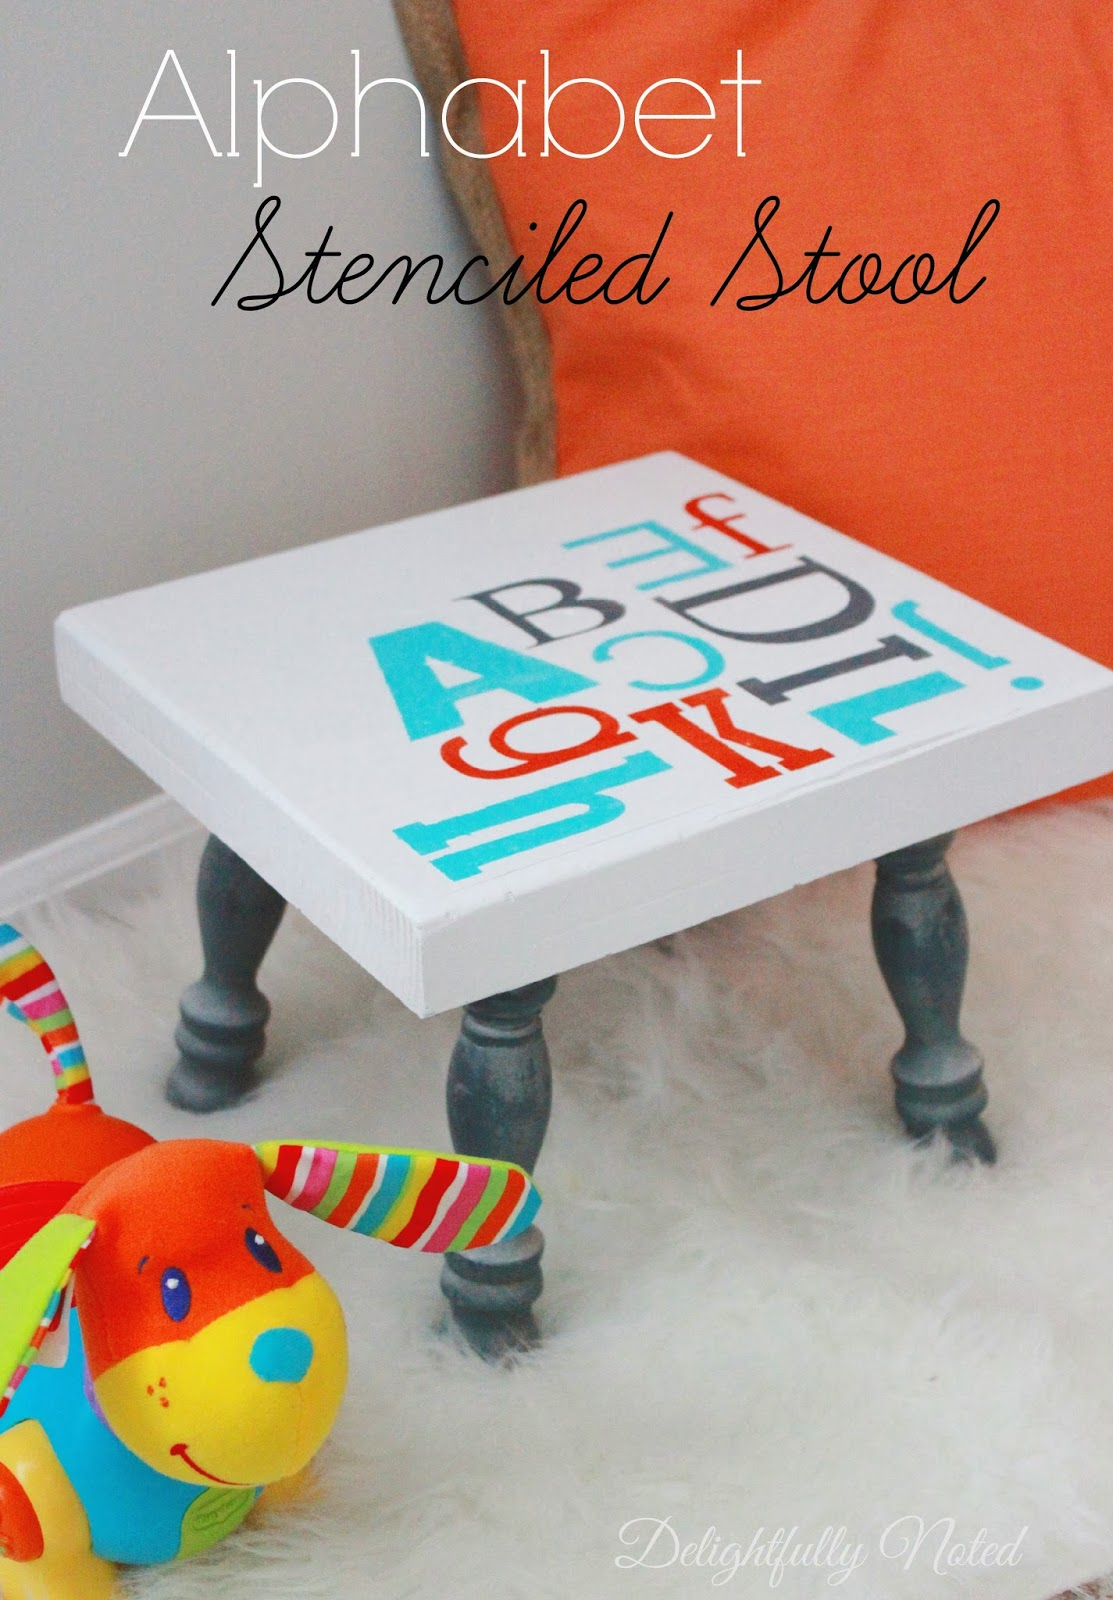 http://delightfullynoted.blogspot.com/2014/03/alphabet-stenciled-stool.html